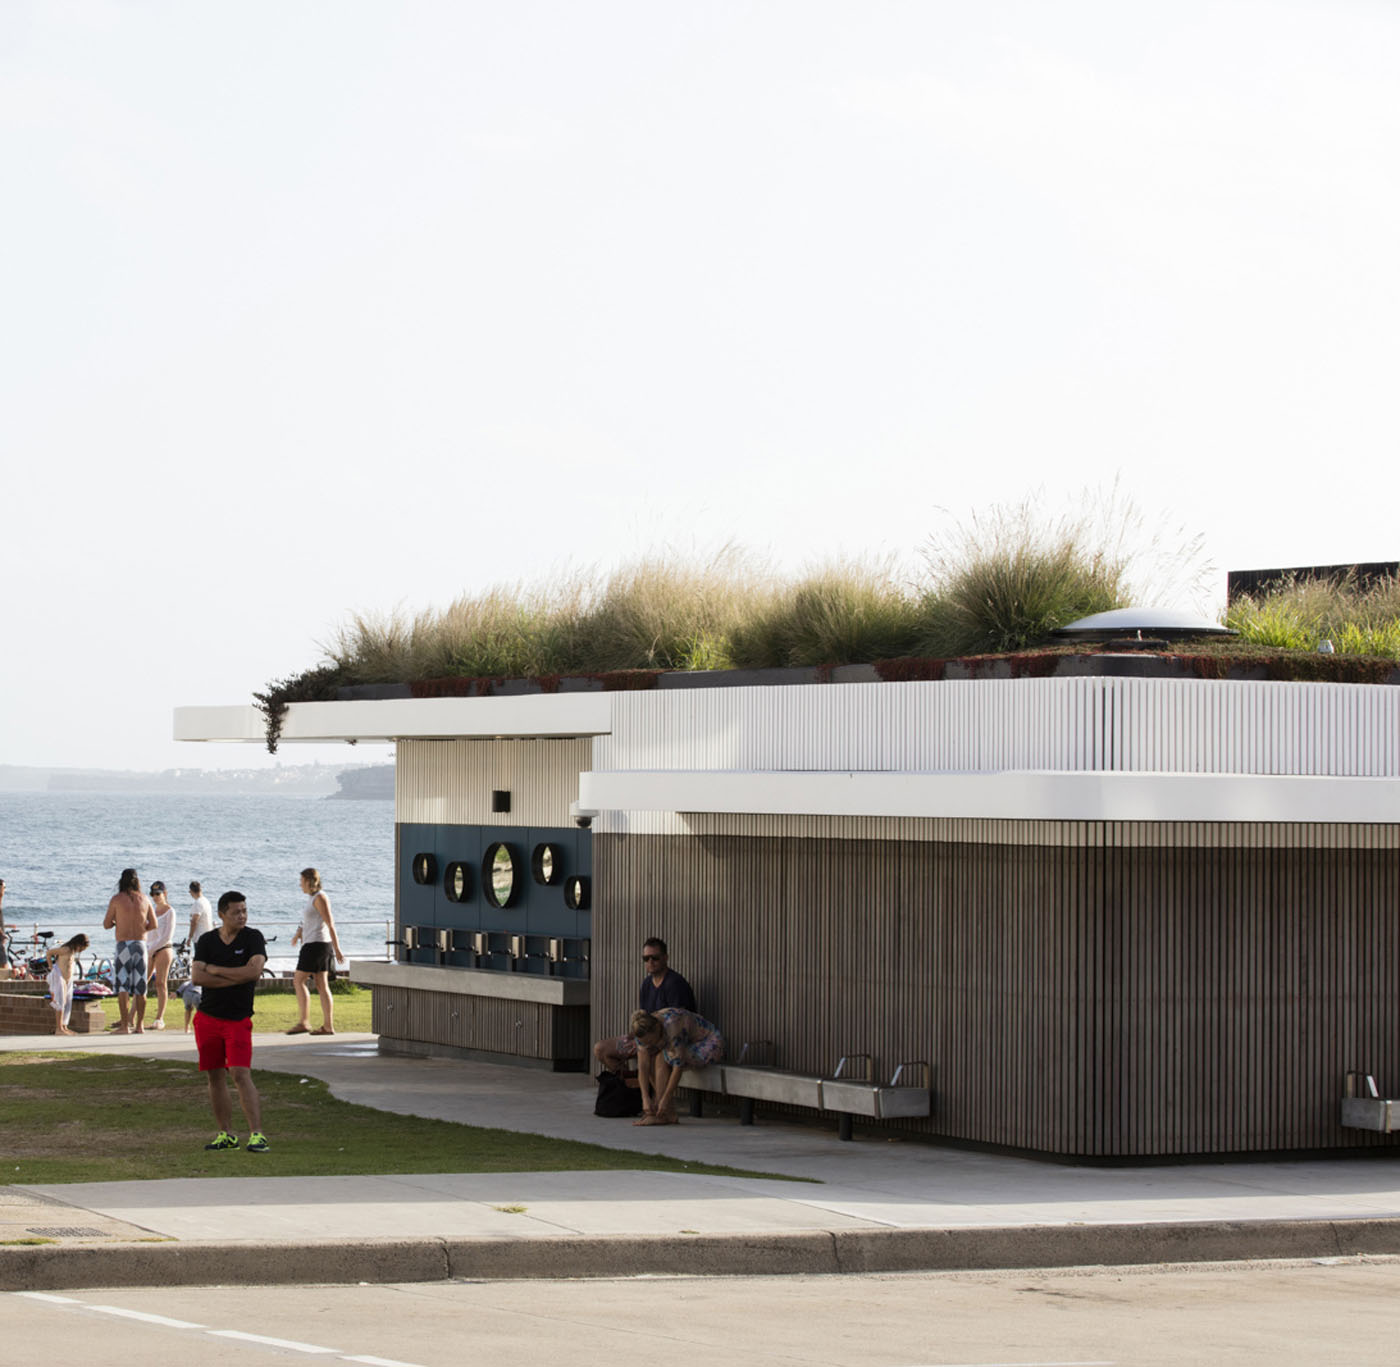 North Bondi Amenities, a public project by award winning Sam Crawford Architects. Green roof is a highlight.